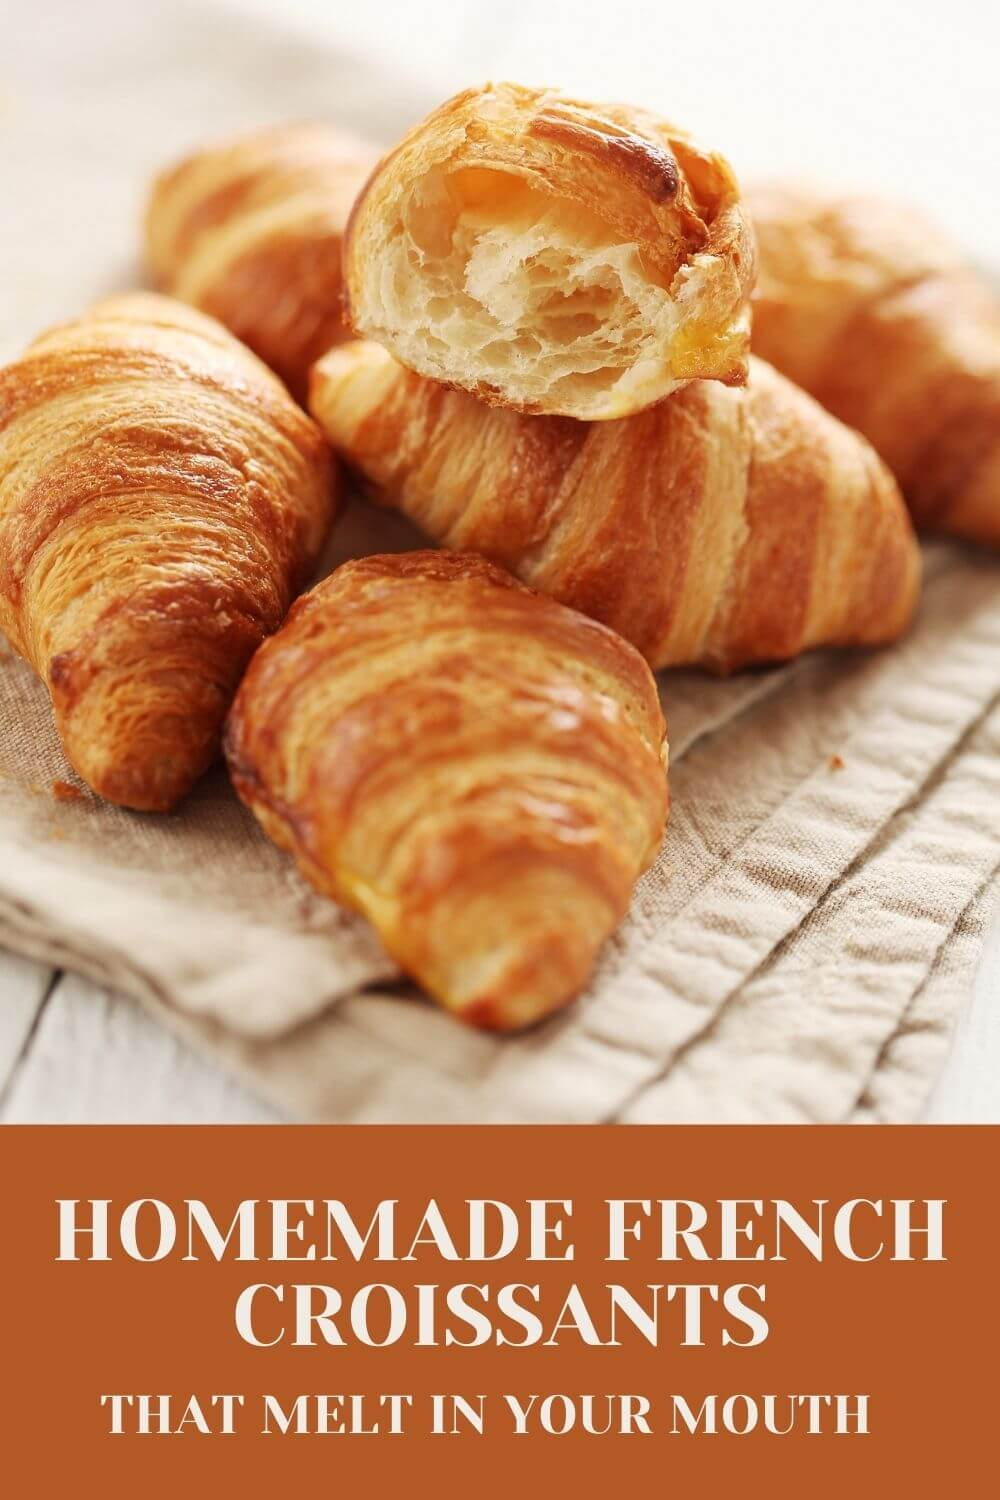 Homemade French croissants that melt in your mouth